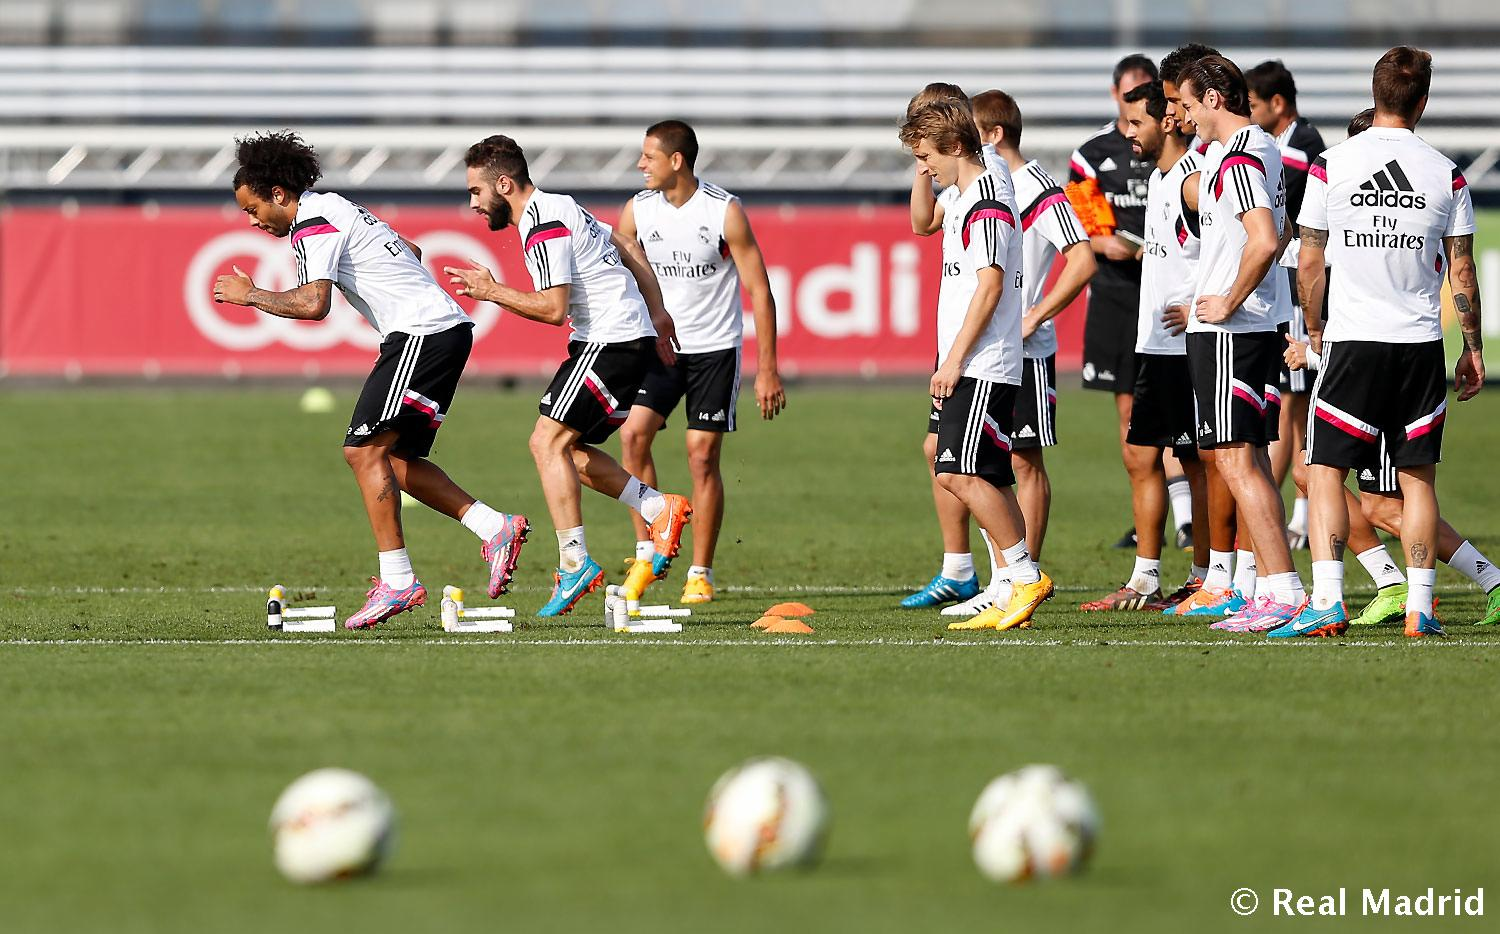 Real Madrid - Entrenamiento del Real Madrid - 04-10-2014